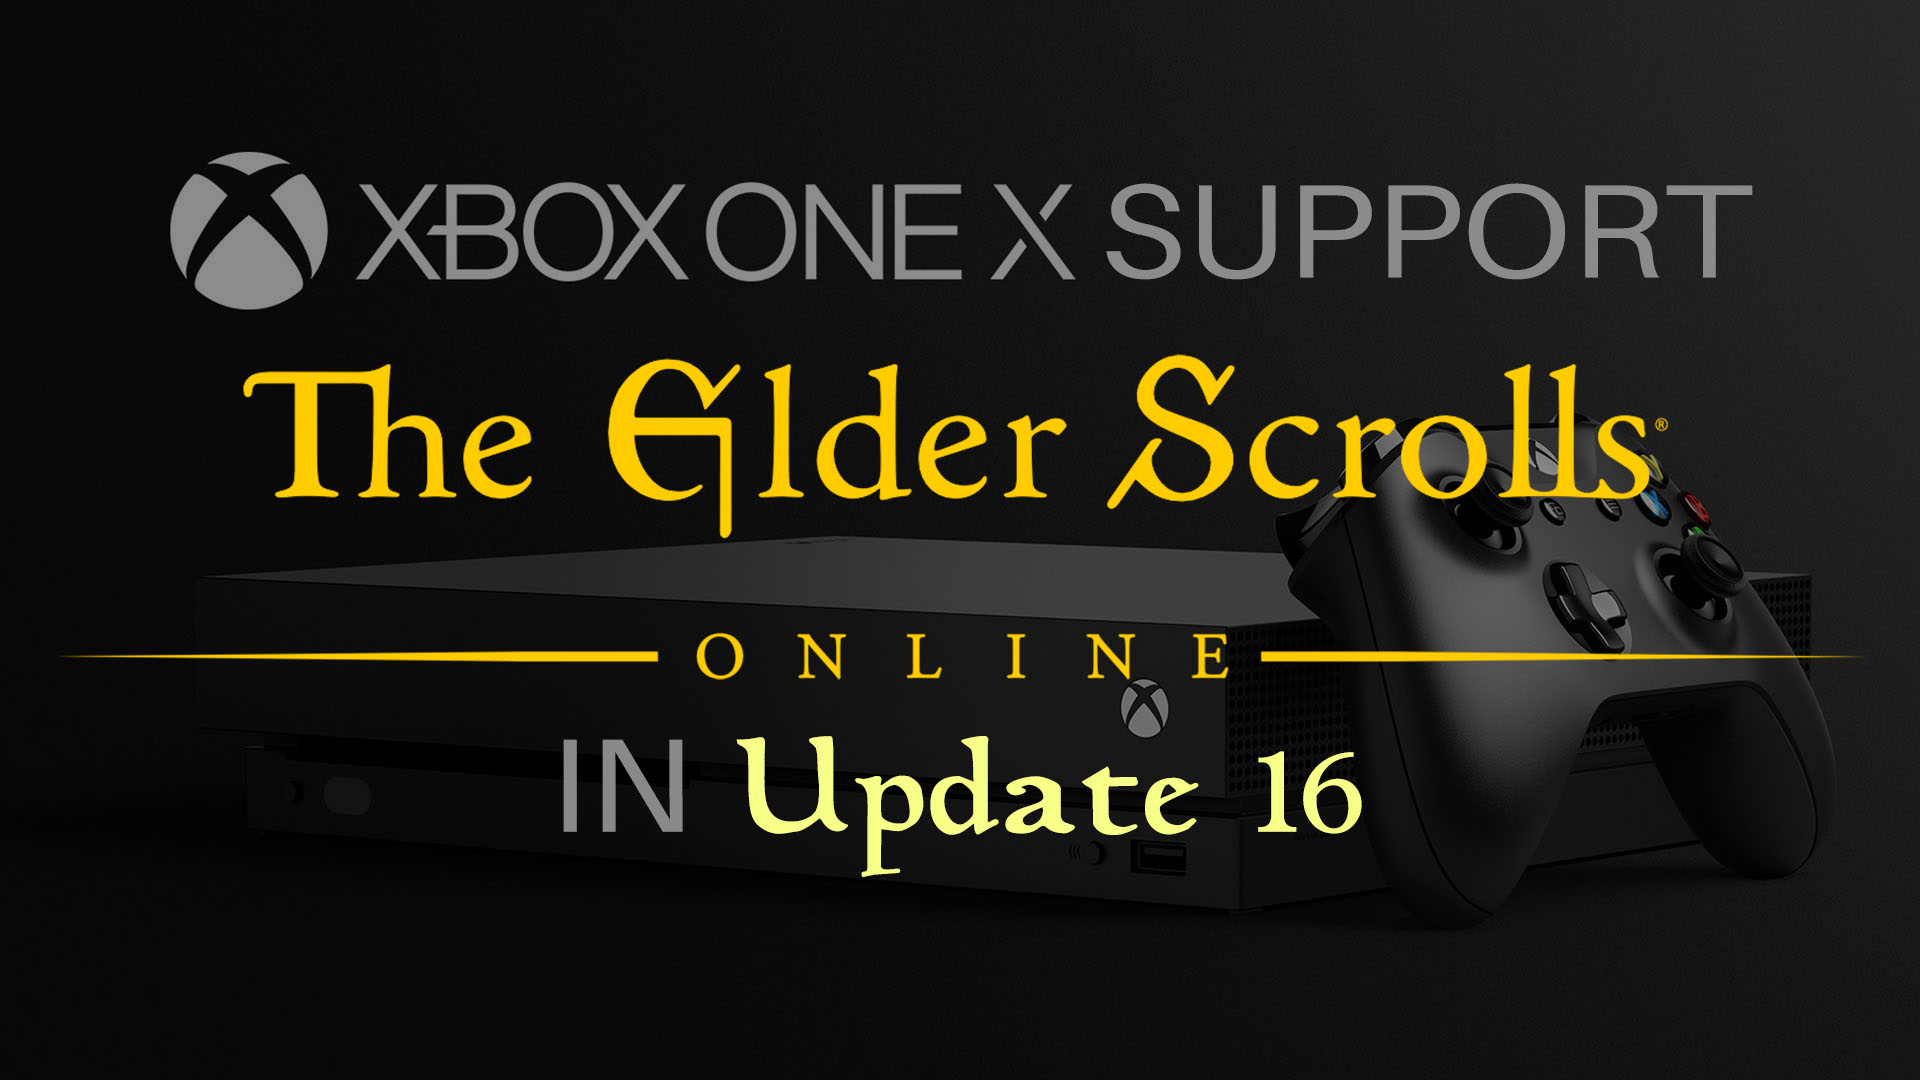 the-elder-scrolls-online-xbox-one-x-support-update-16-clockwork-city-dlc-rpg-bethesda-mmo